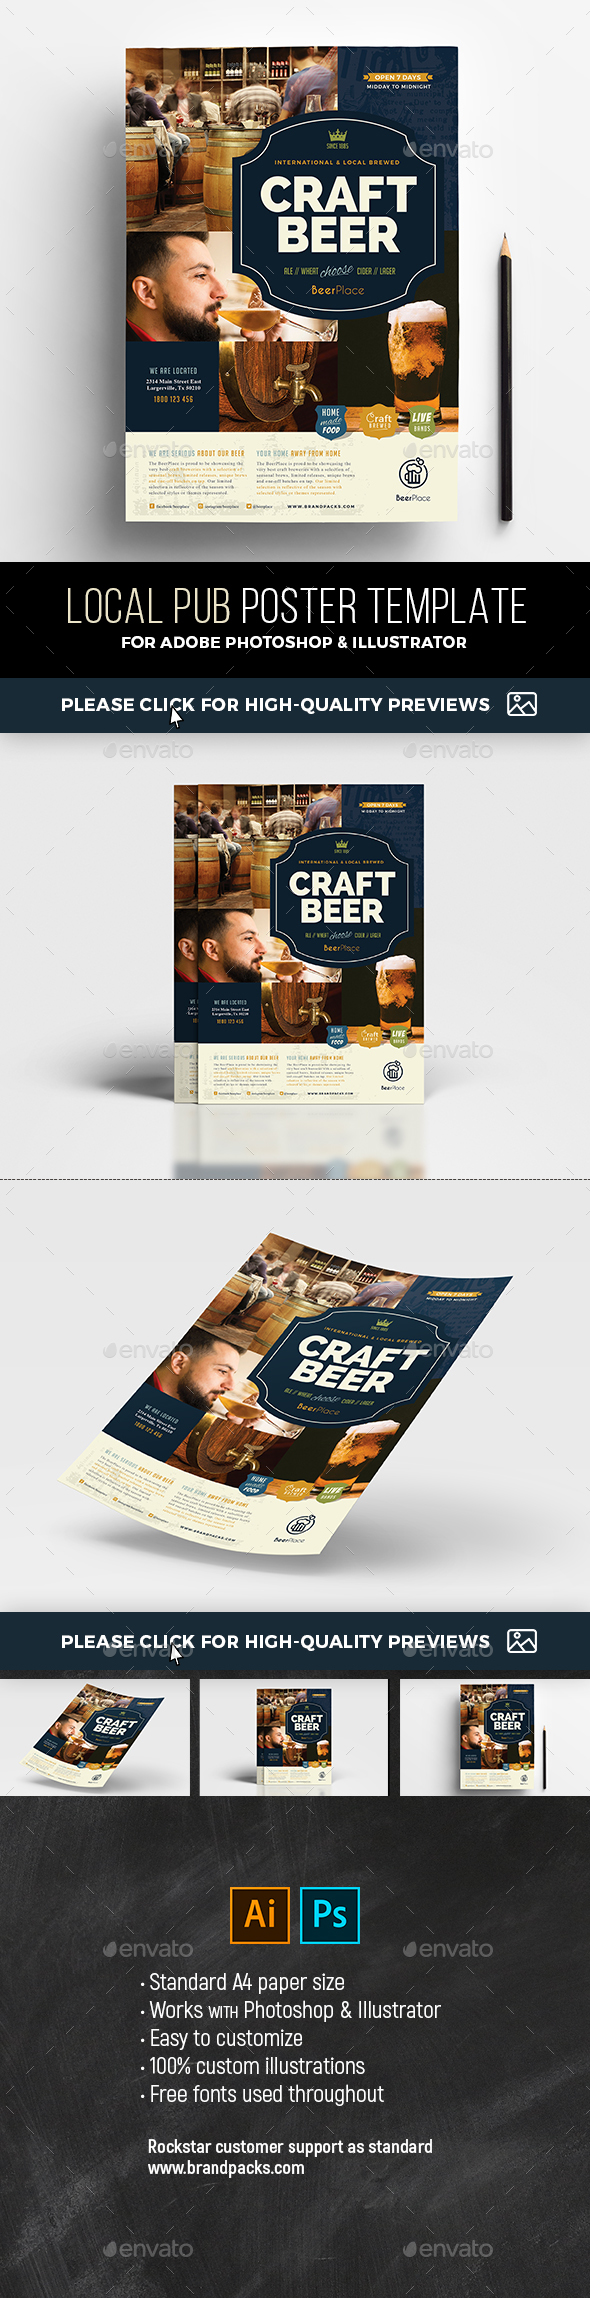 Local Pub Poster Template - Restaurant Flyers